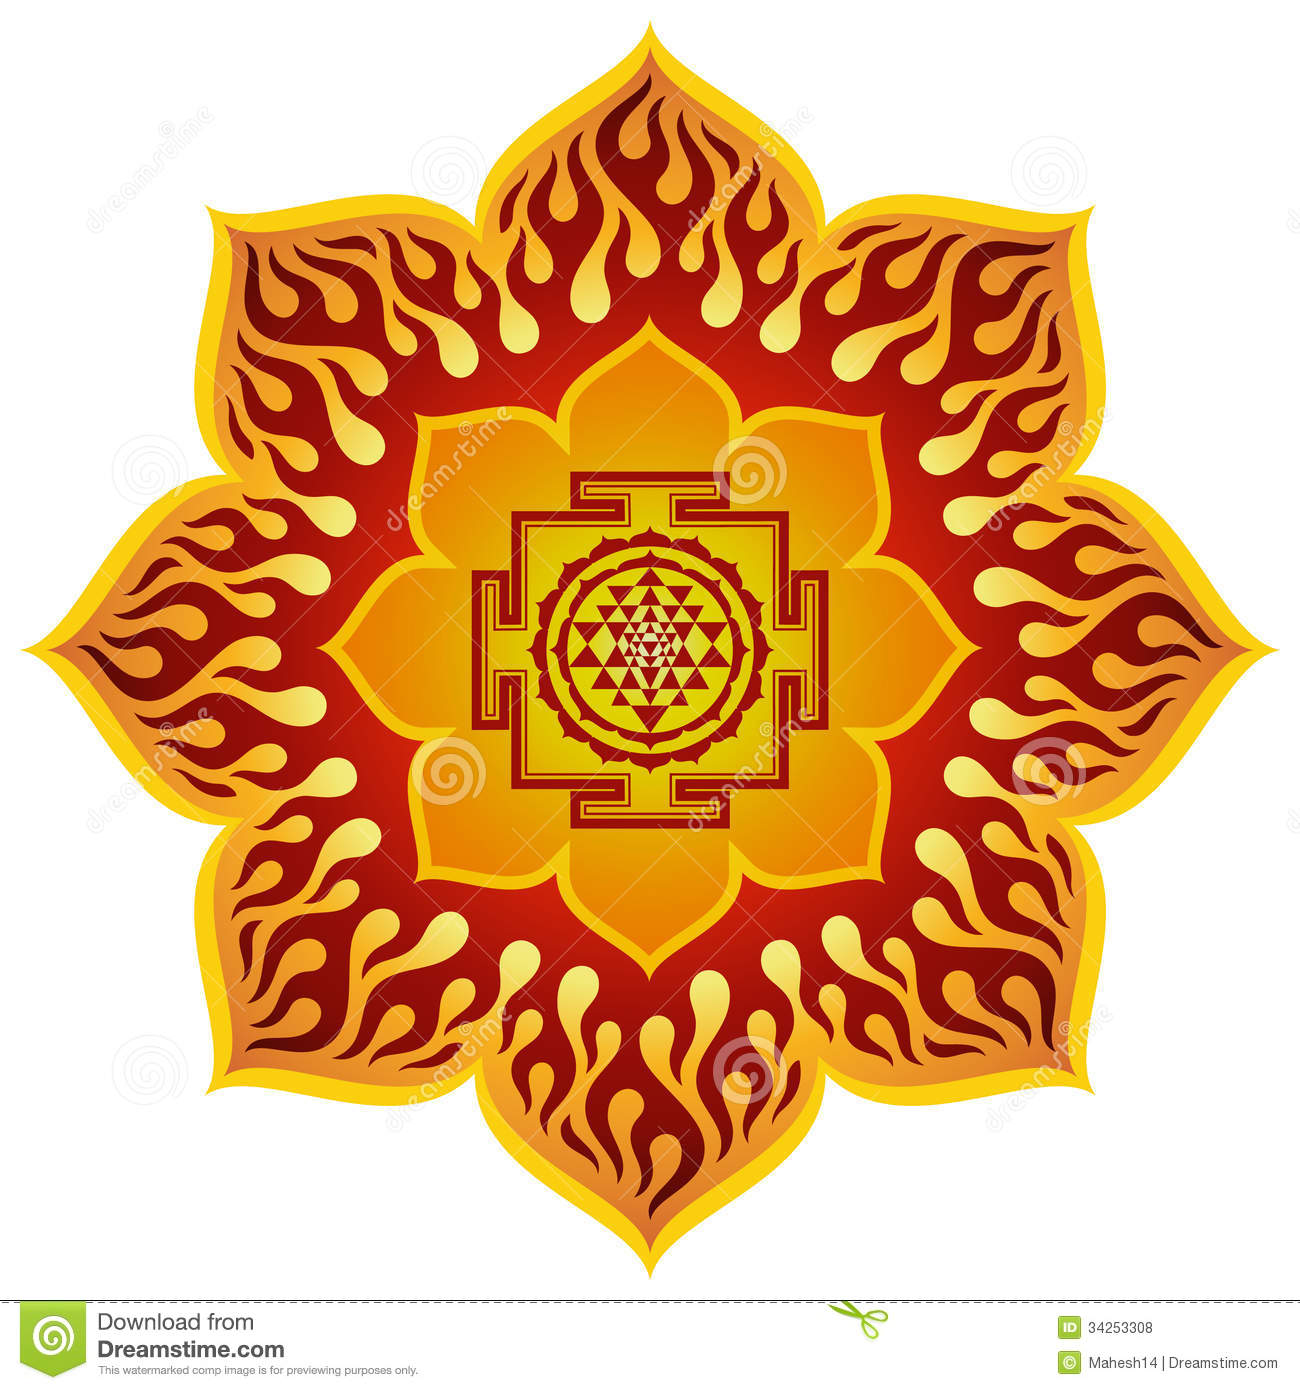 Lotus Sri Yantra Design Illustration 34253308 - Megapixl